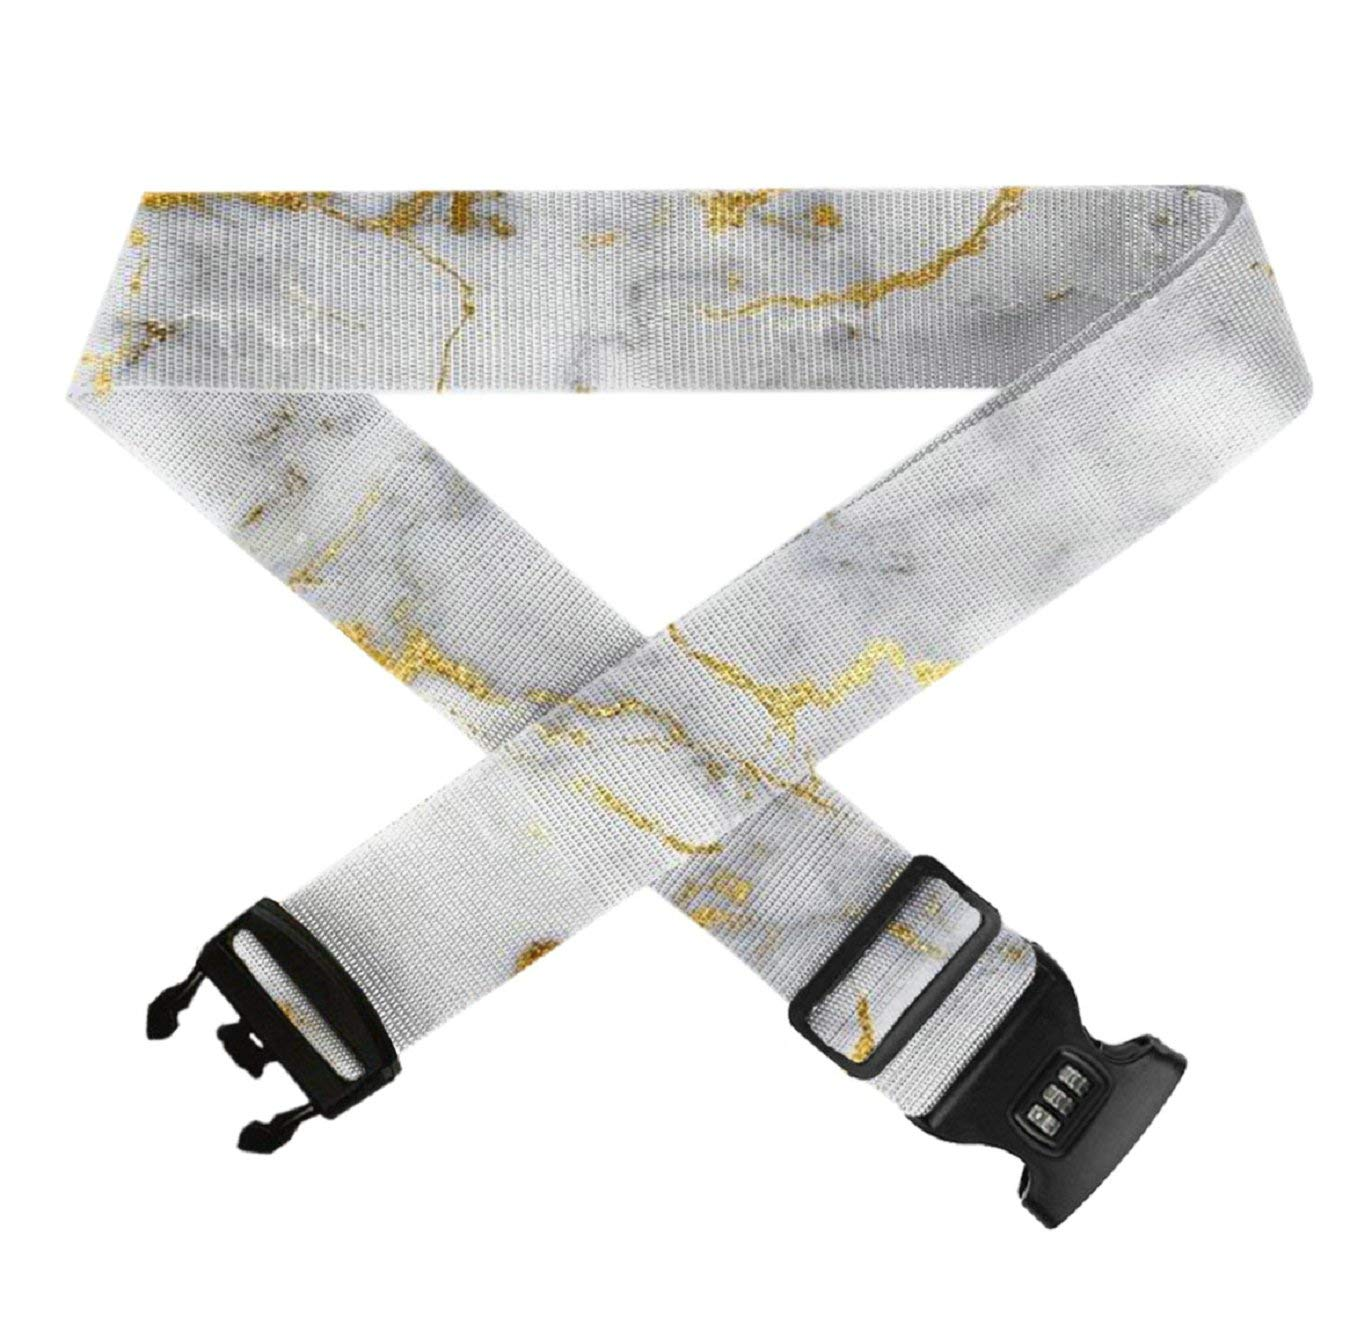 Gold Marble GLORY ART Suitcase Straps TSA Approved Lock Travel Bag Accessories,1-Pack Adjustable Luggage Belt for 20-32 Suitcase